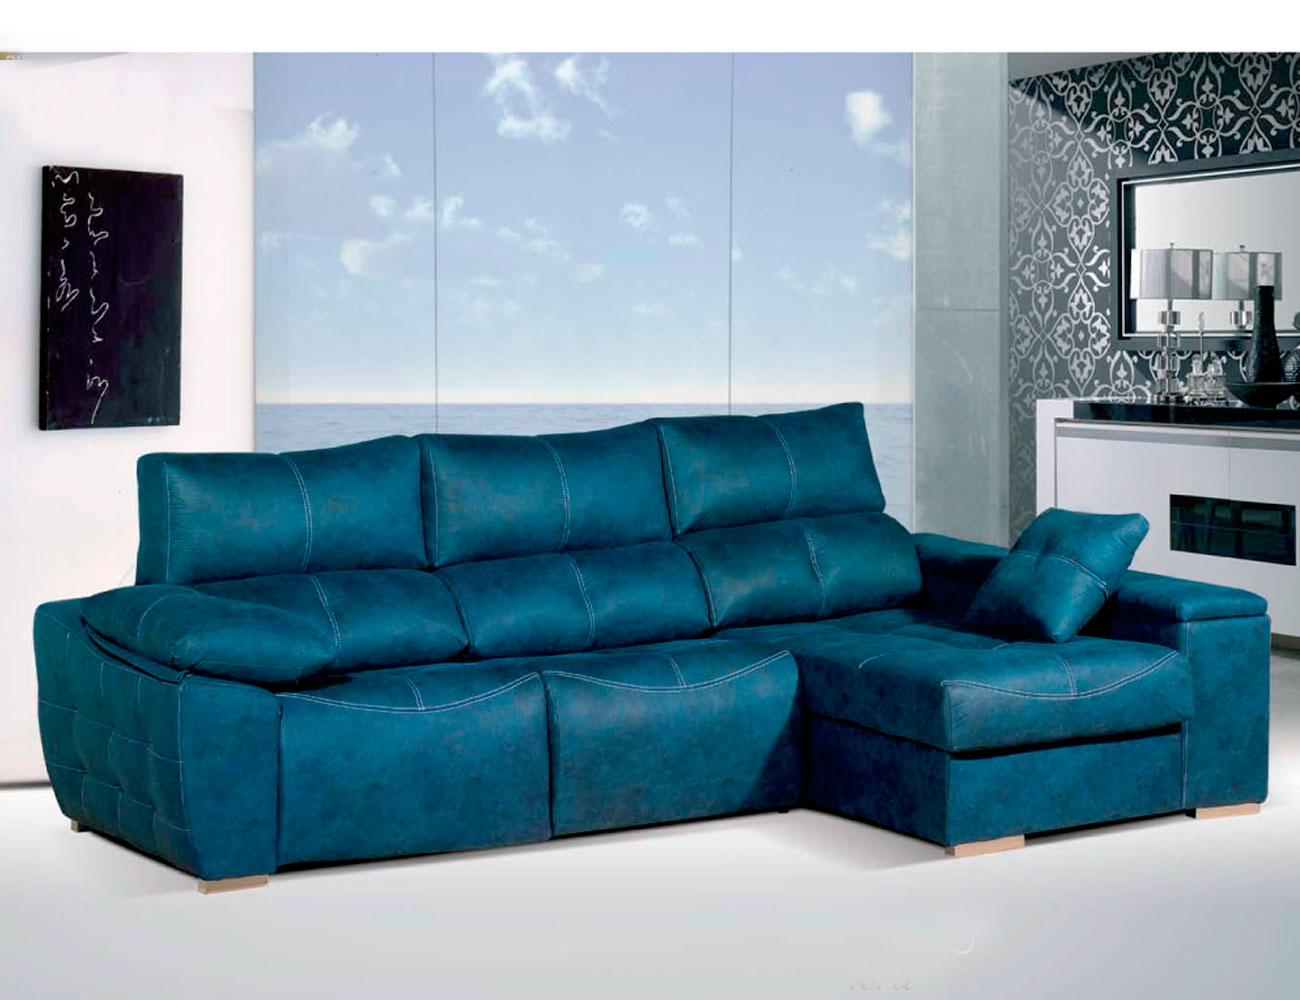 Sofa chaiselongue relax 2 motores anti manchas turquesa43